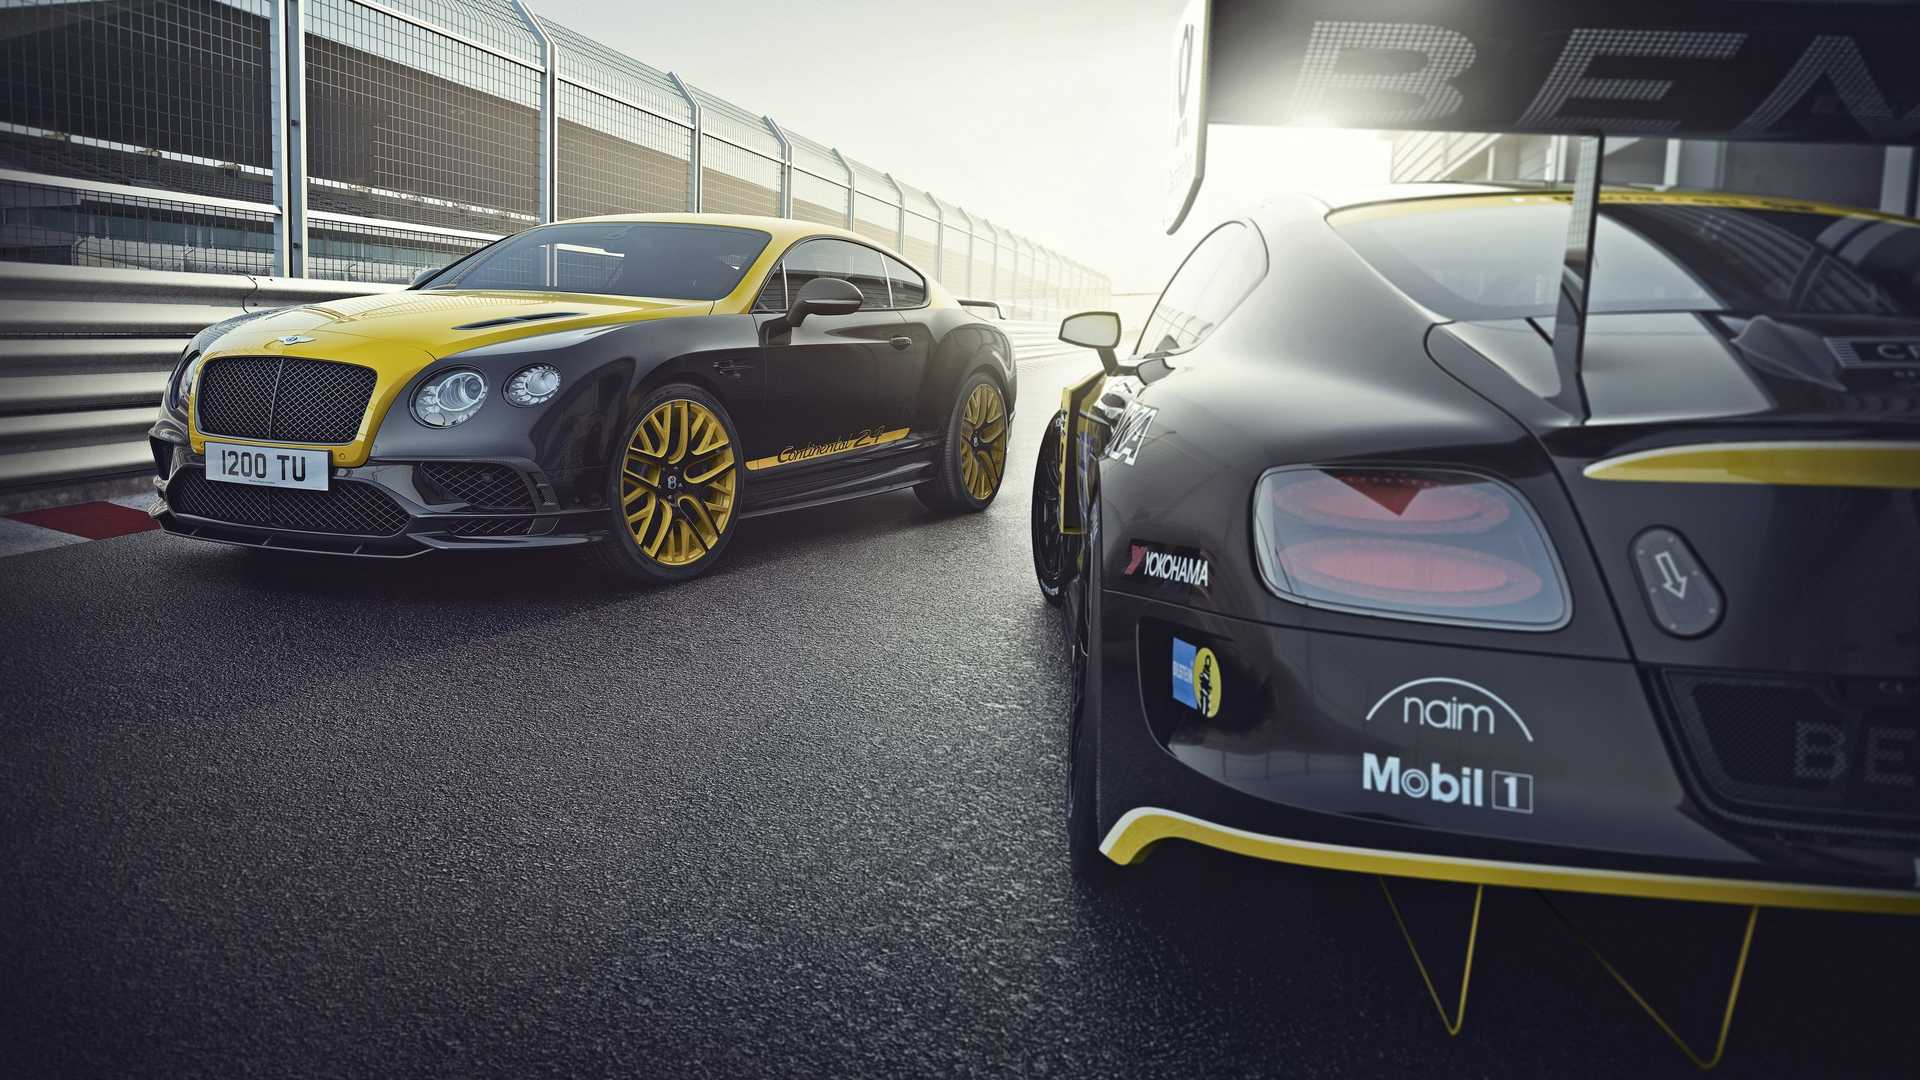 Photo of 700 beygirlik Bentley Continental 24 motorsporlarından ilham alıyor